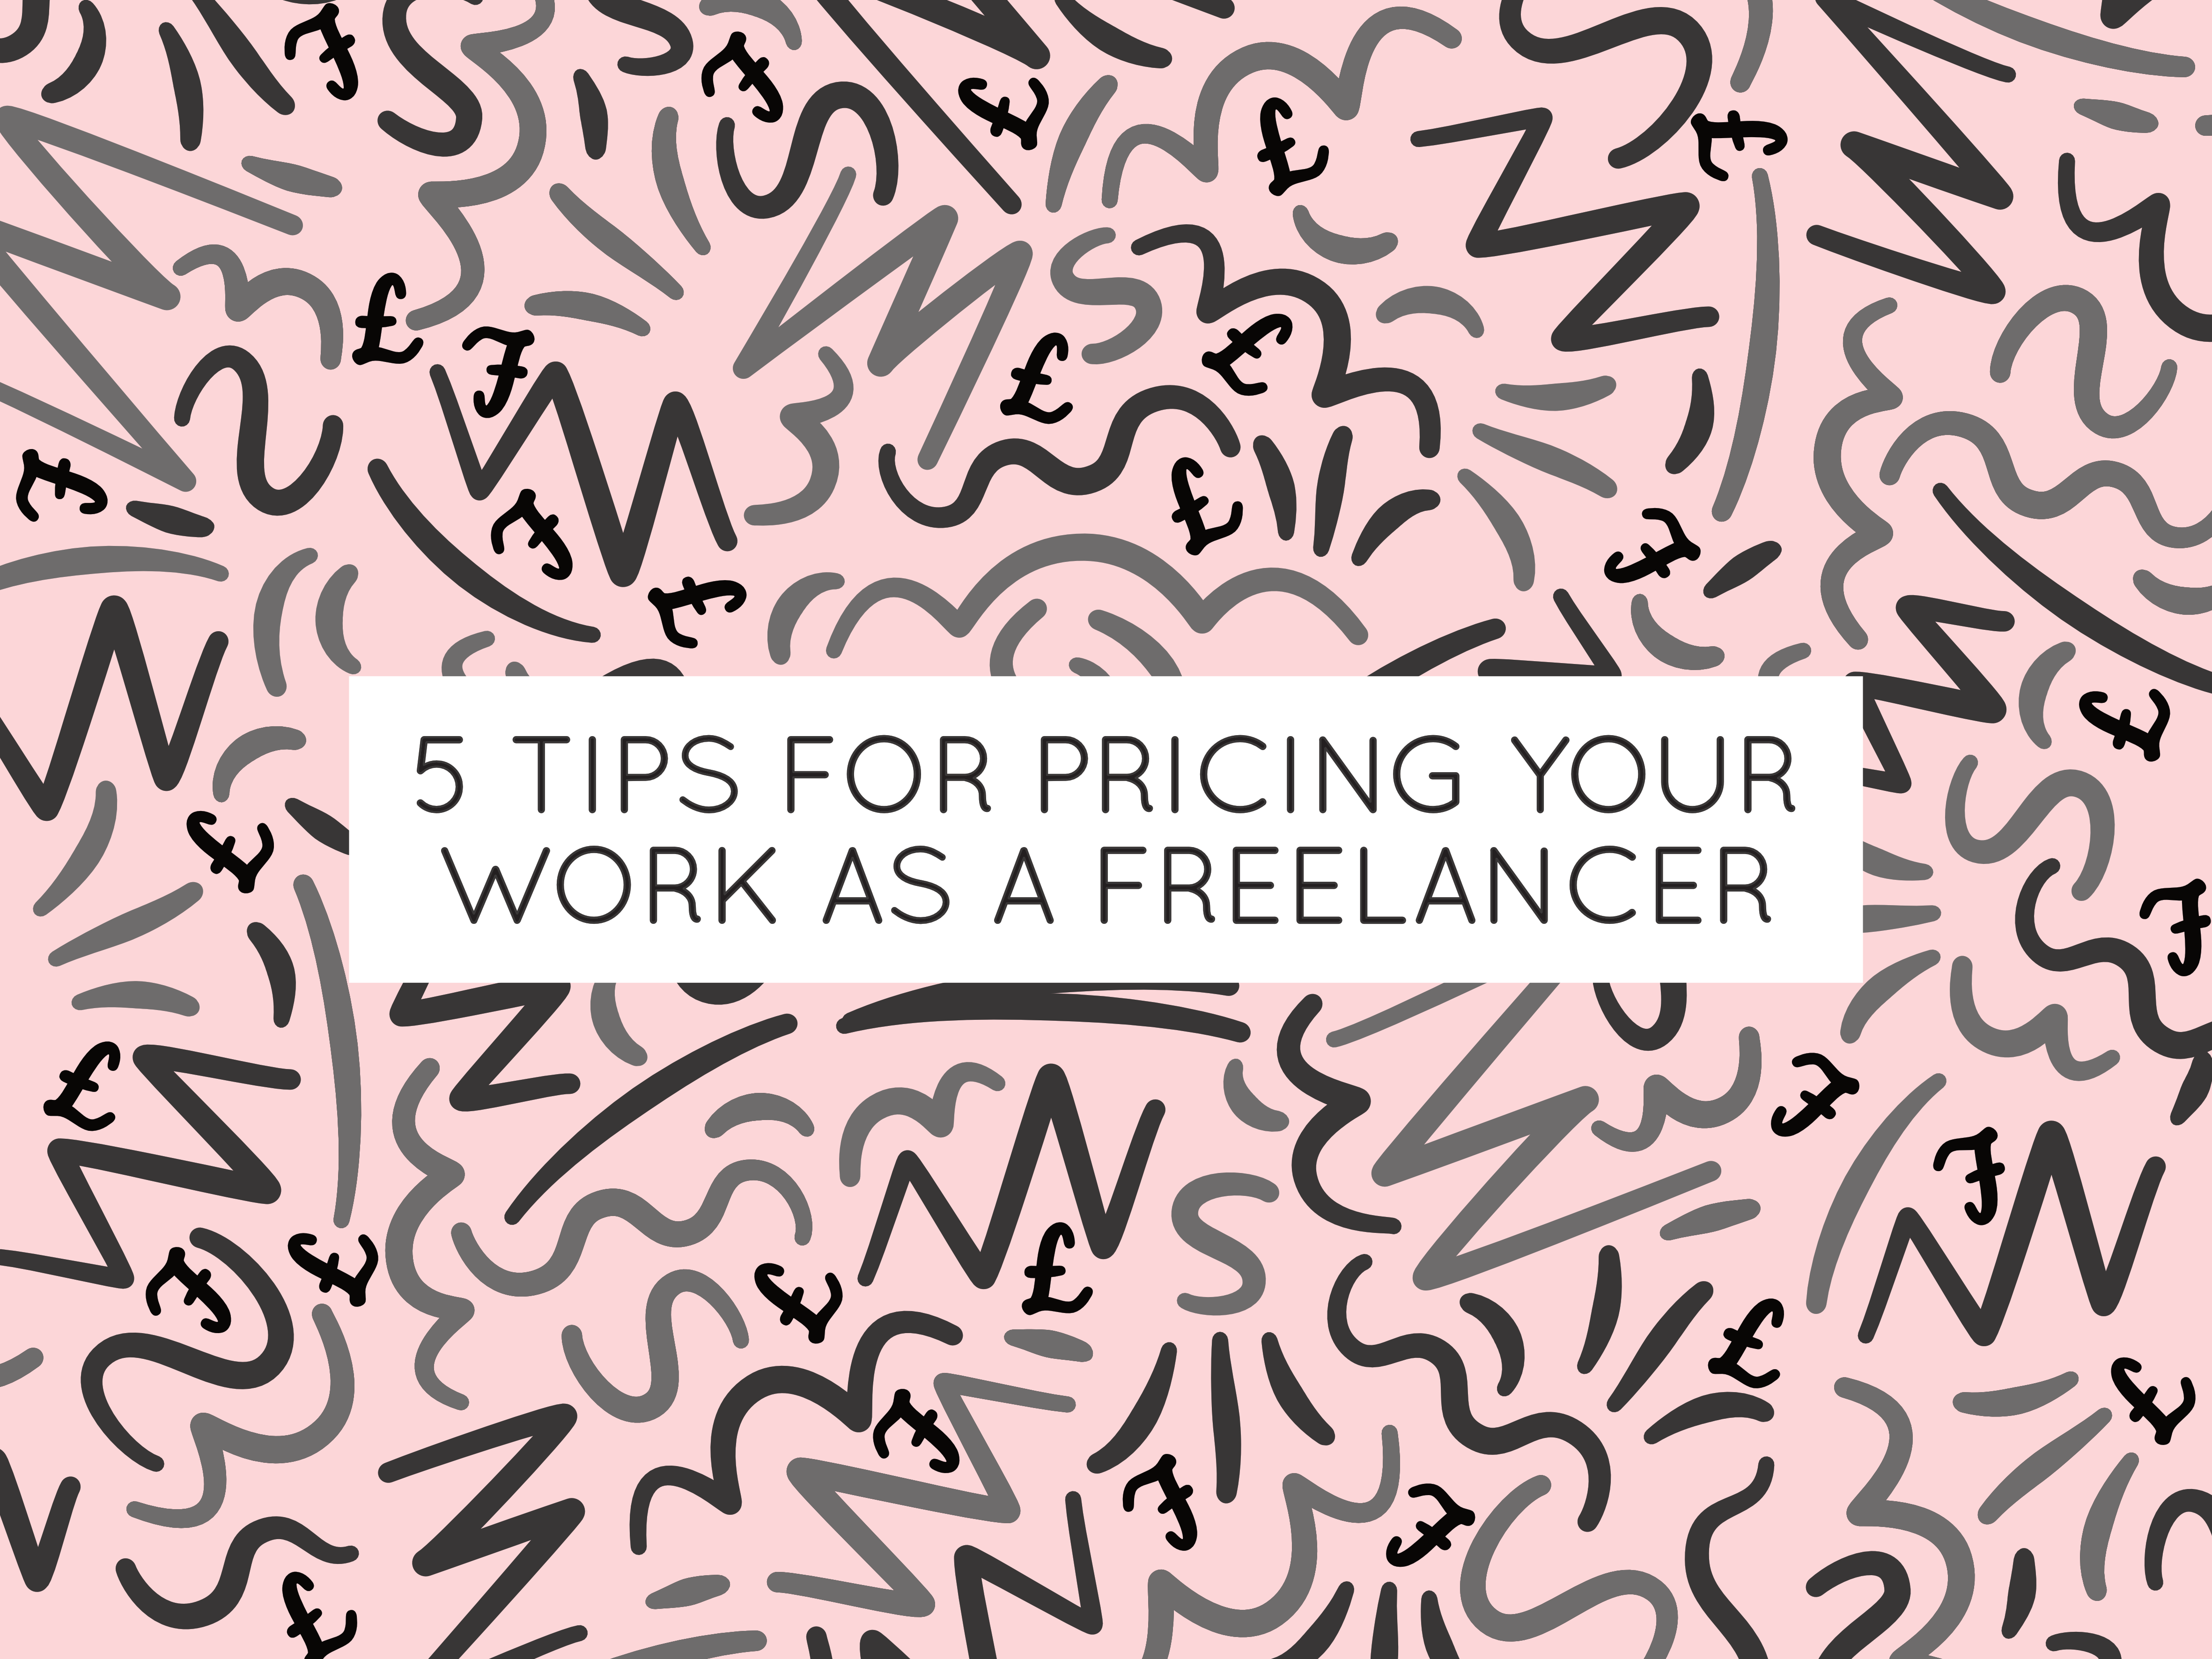 how to price your work as a freelancer